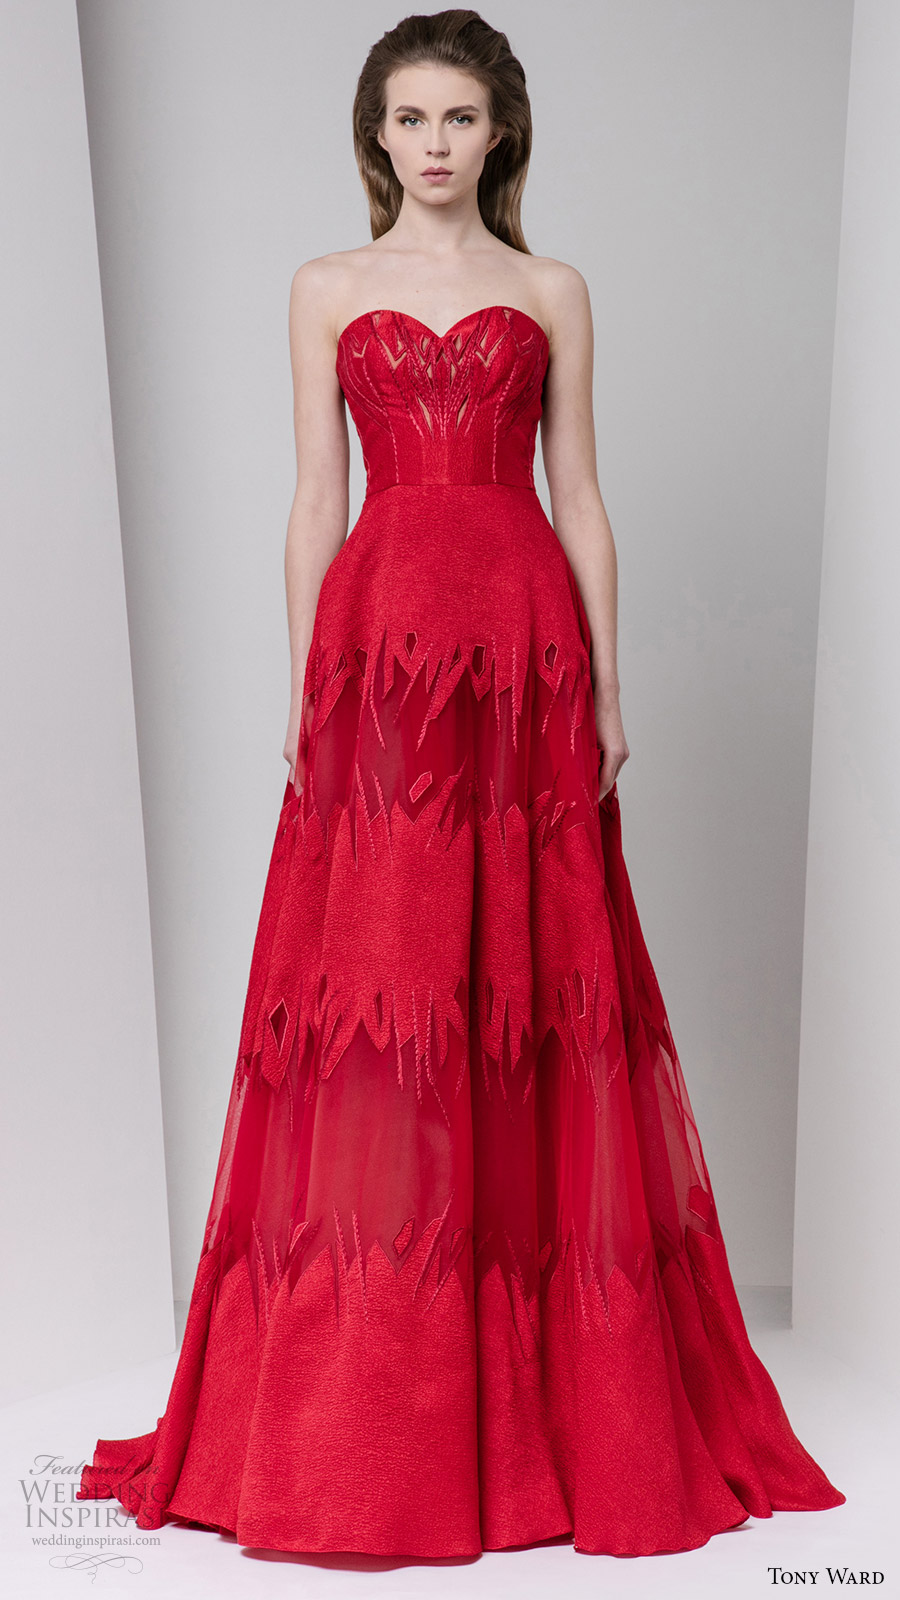 tony ward fall 2016 rtw strapless sweetheart a line red evening gown bridal inspiration